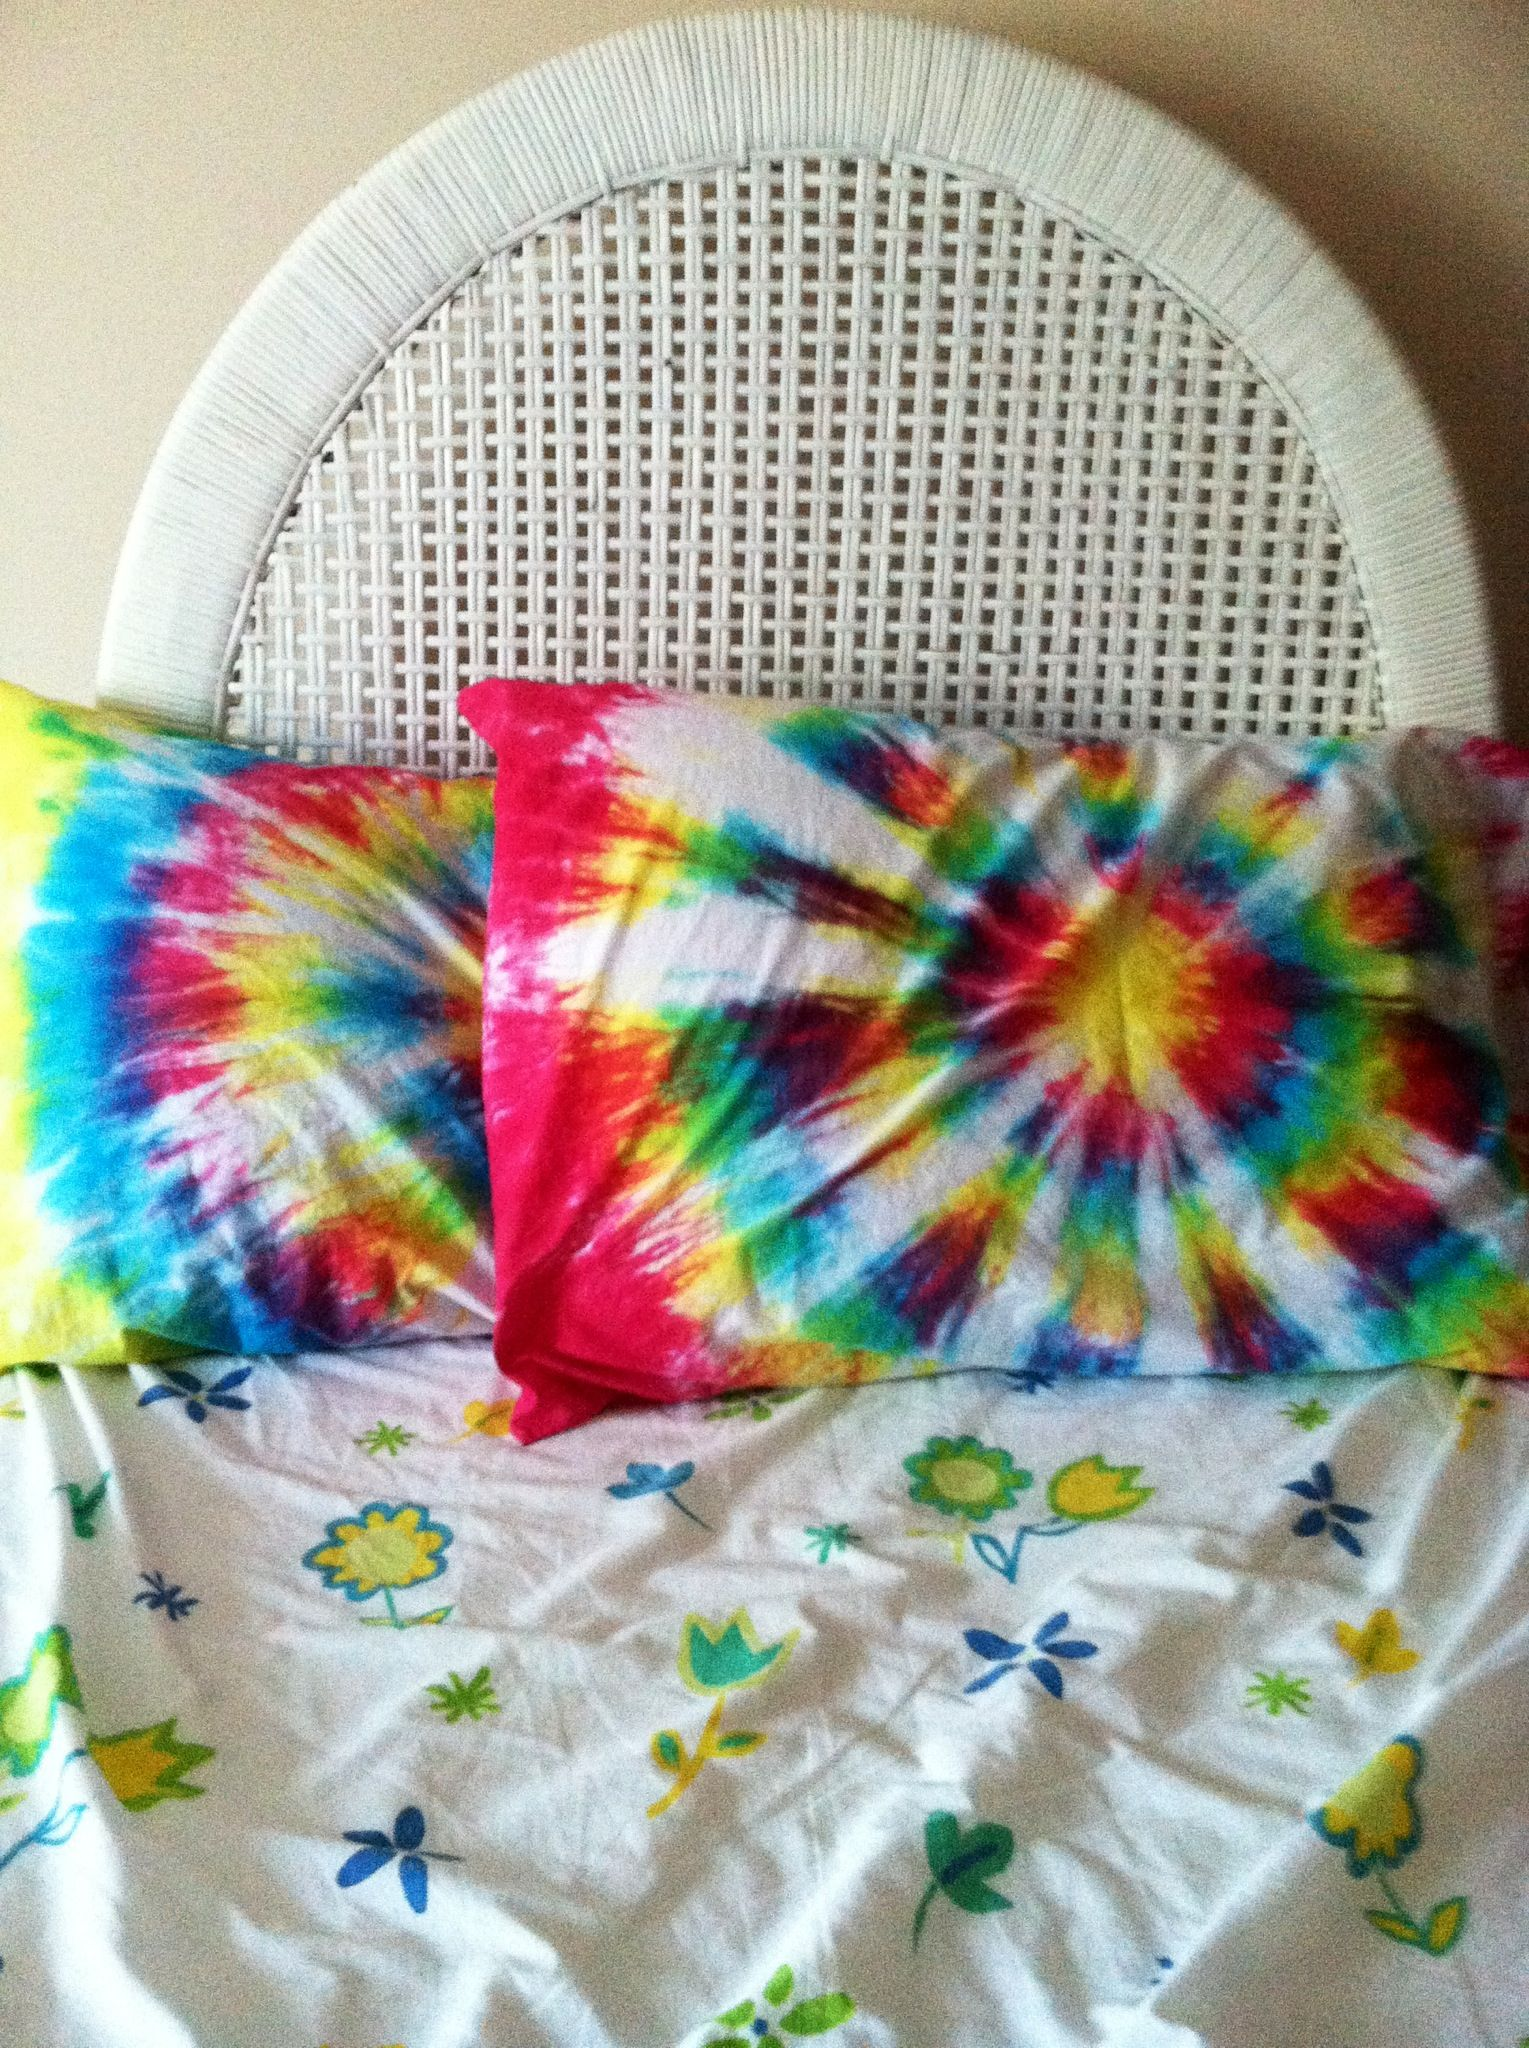 Cheap white pillowcases for crafts - Diy Tie Dye Pillow Cases